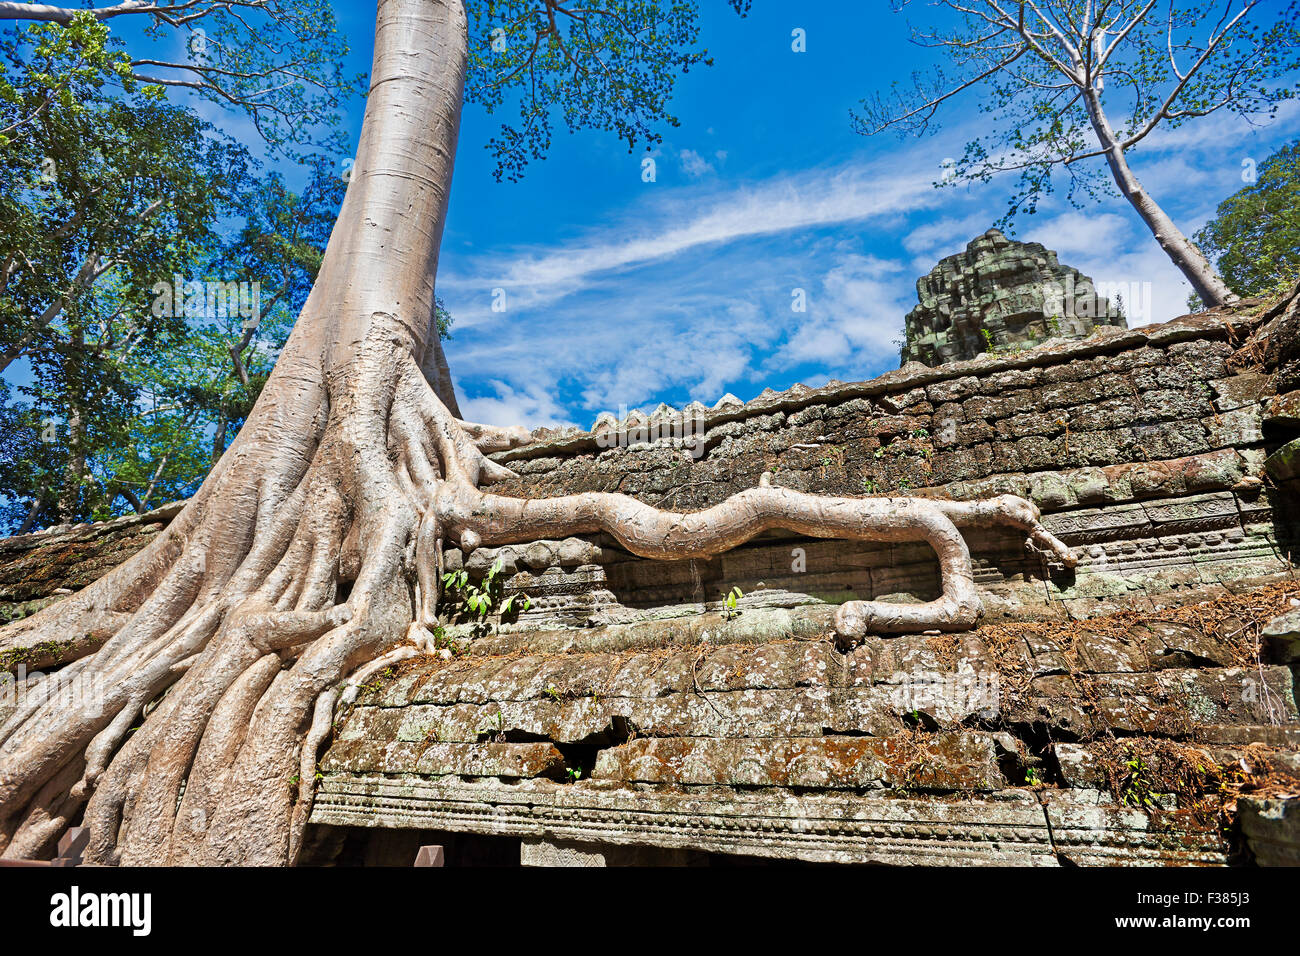 Ta Prohm temple. Angkor Archaeological Park, Siem Reap Province, Cambodia. - Stock Image